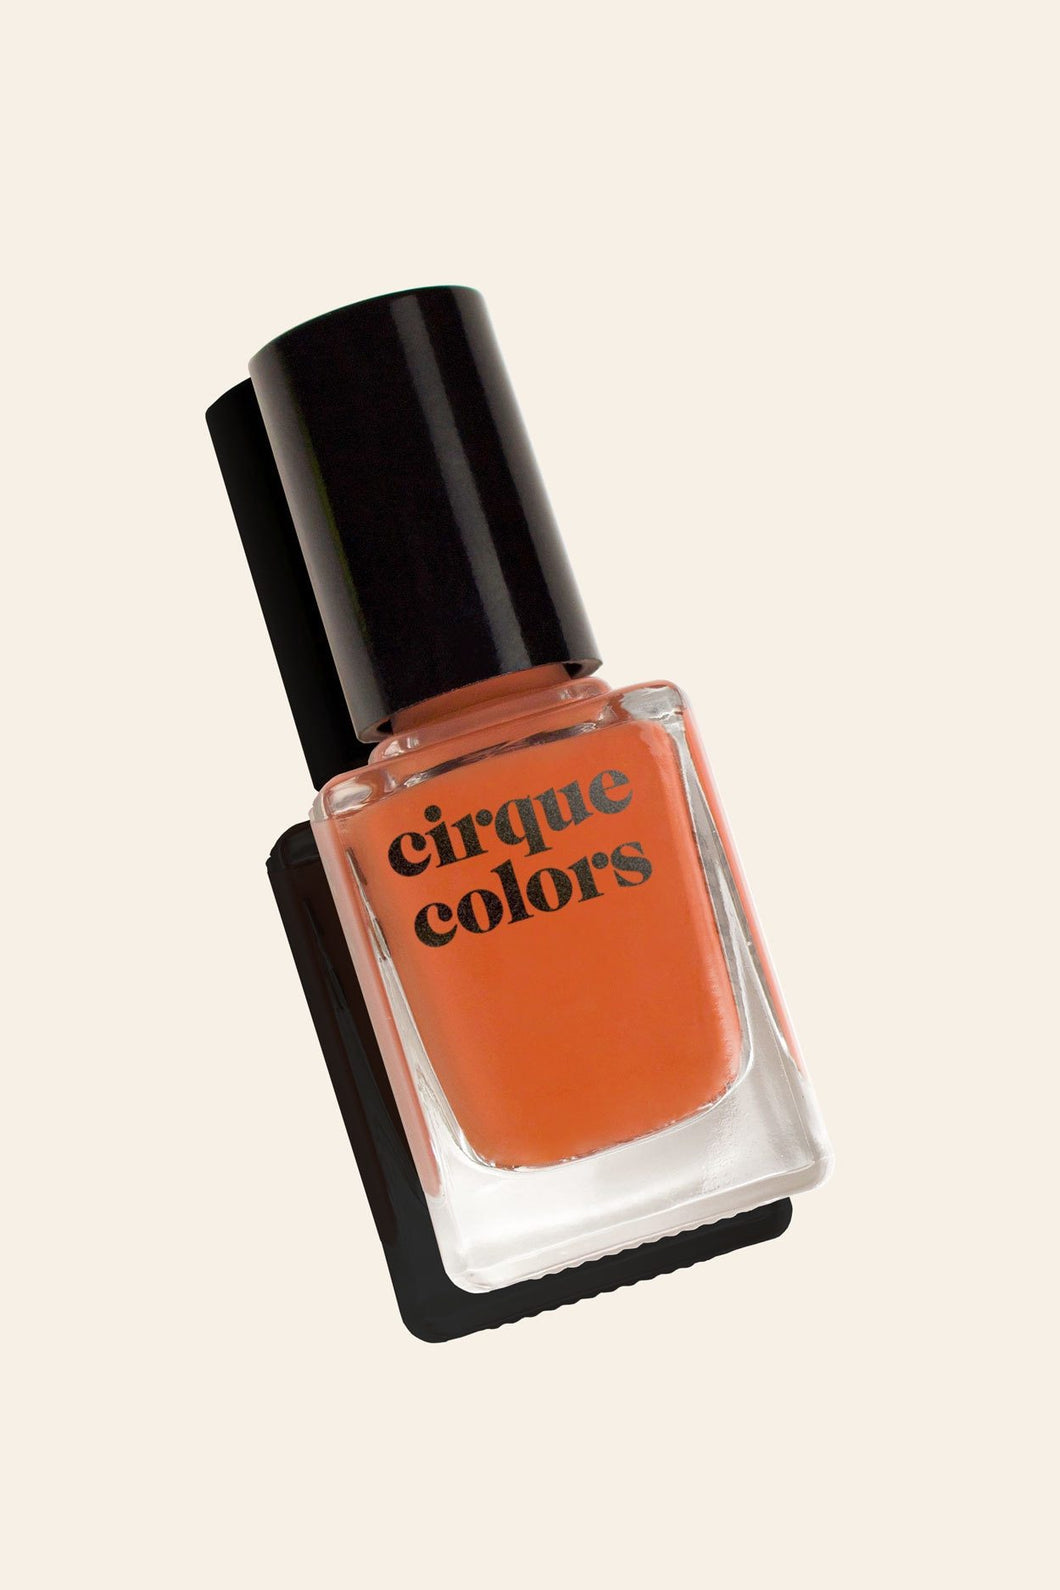 CIRQUE COLORS Nail Polish